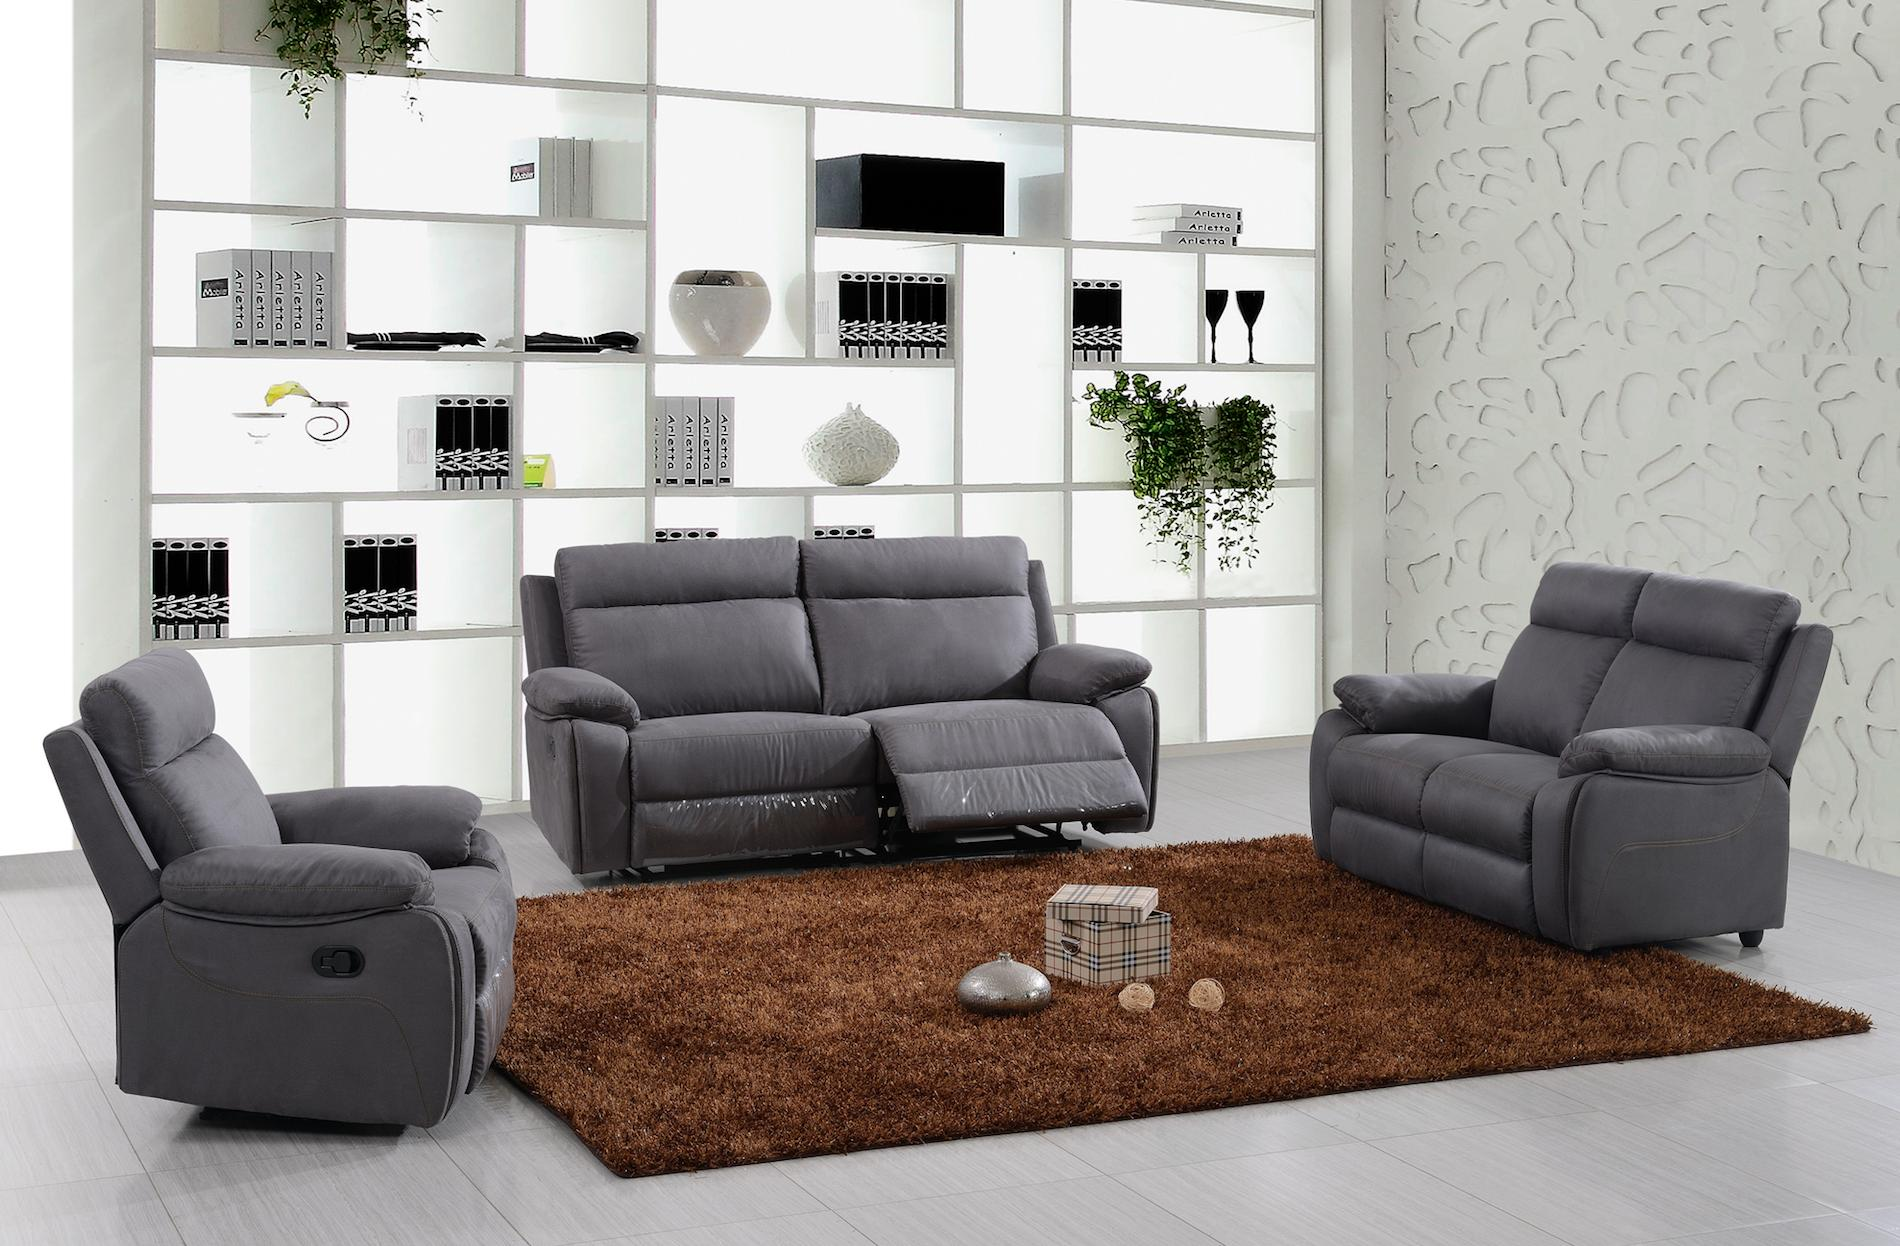 ensemble canap de relaxation 3 places lectrique et 2 places fixe microfibre gris rick. Black Bedroom Furniture Sets. Home Design Ideas